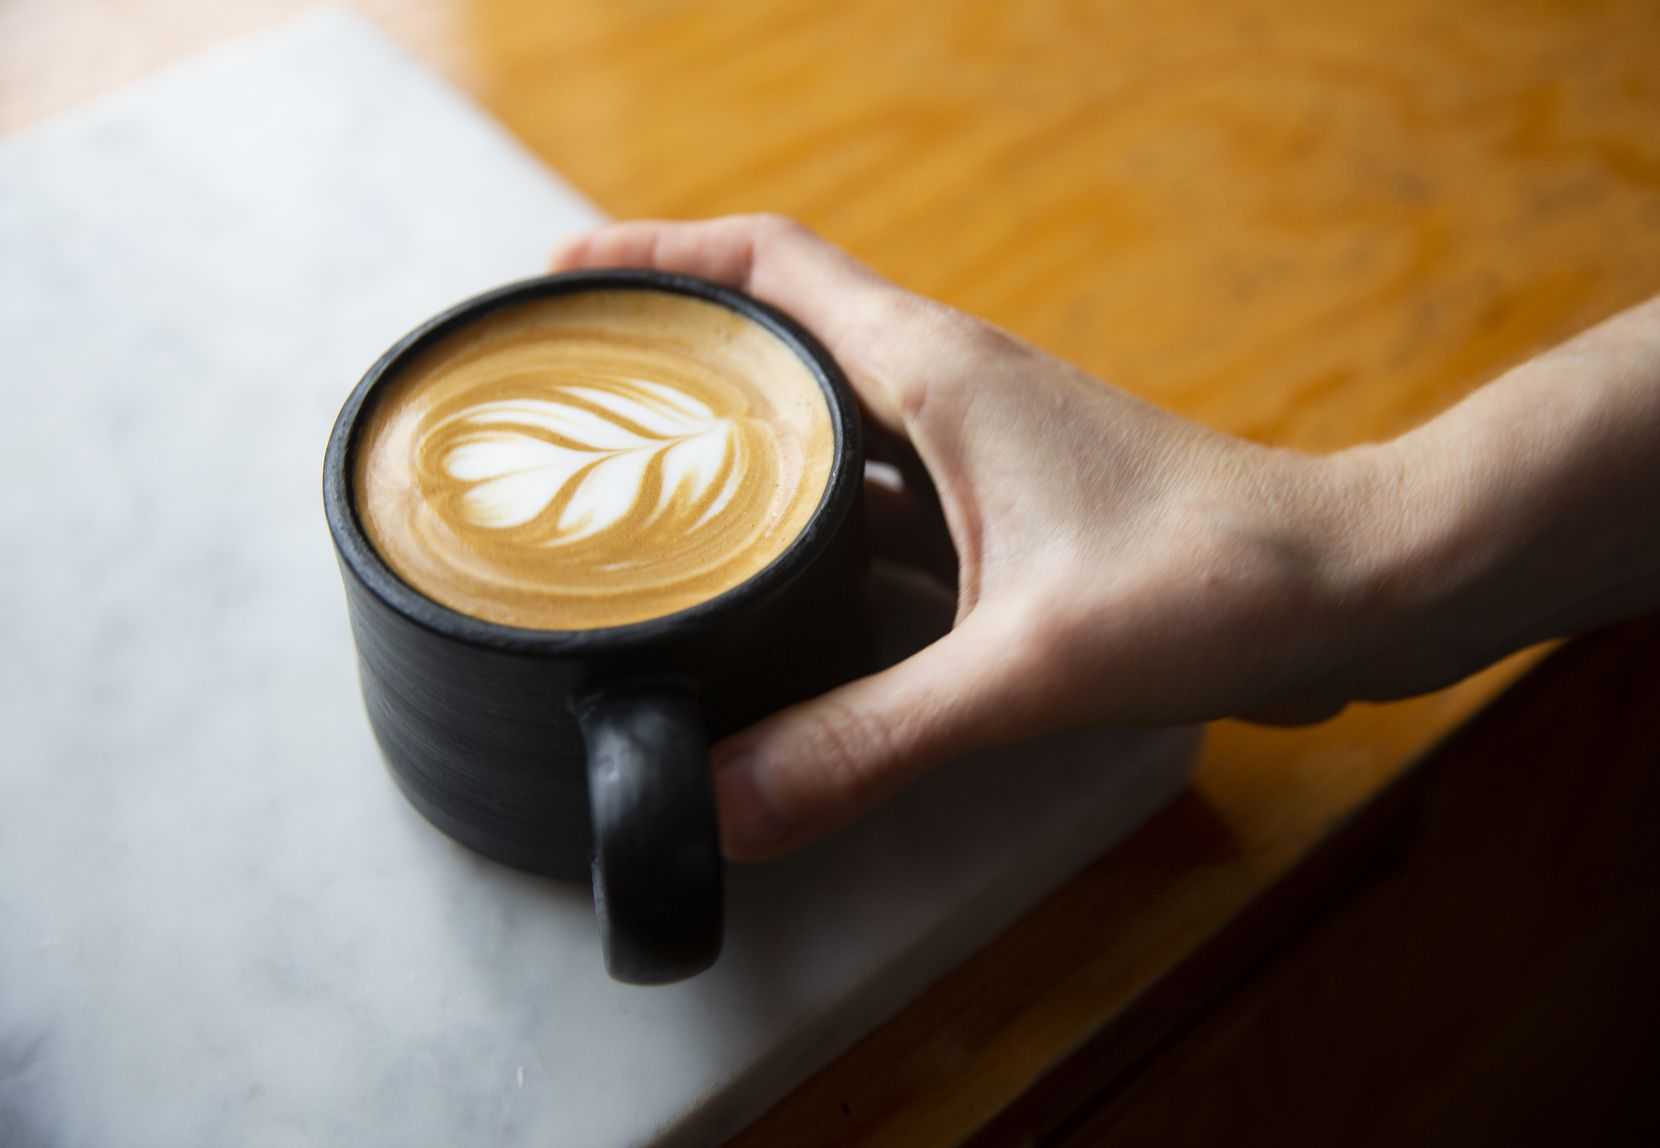 A latte at Coffee Folk Cafe truck on Jan. 10, 2020 in Fort Worth. (Juan Figueroa/ The Dallas Morning News)